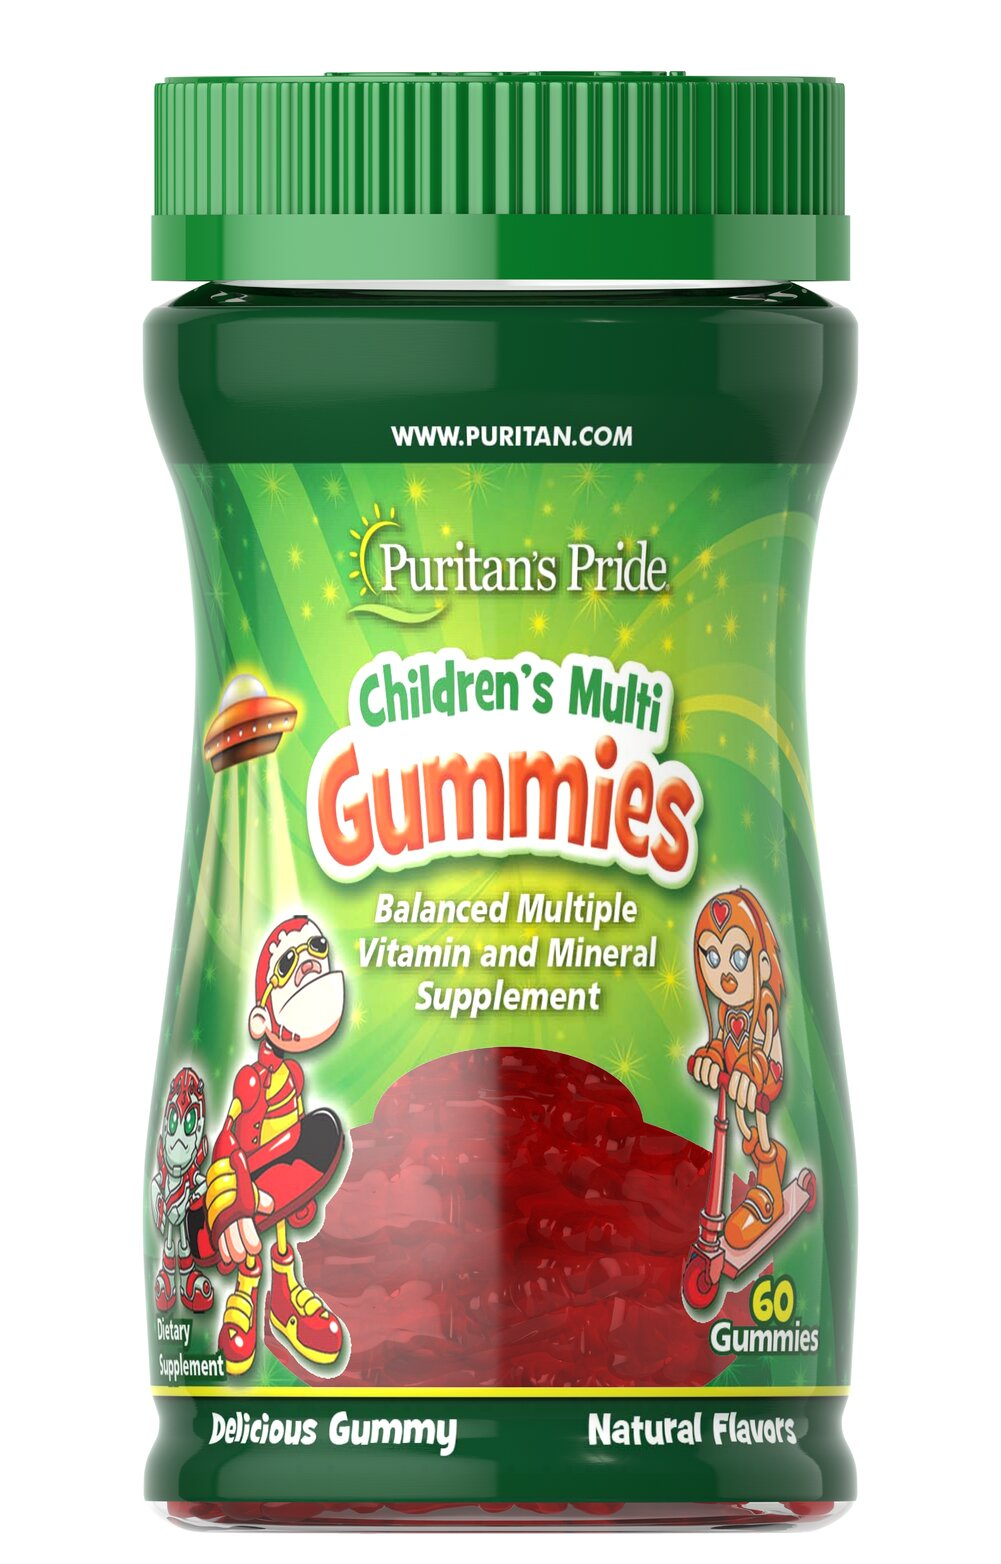 Children's Multivitamins & Minerals Gummies  60 Gummies